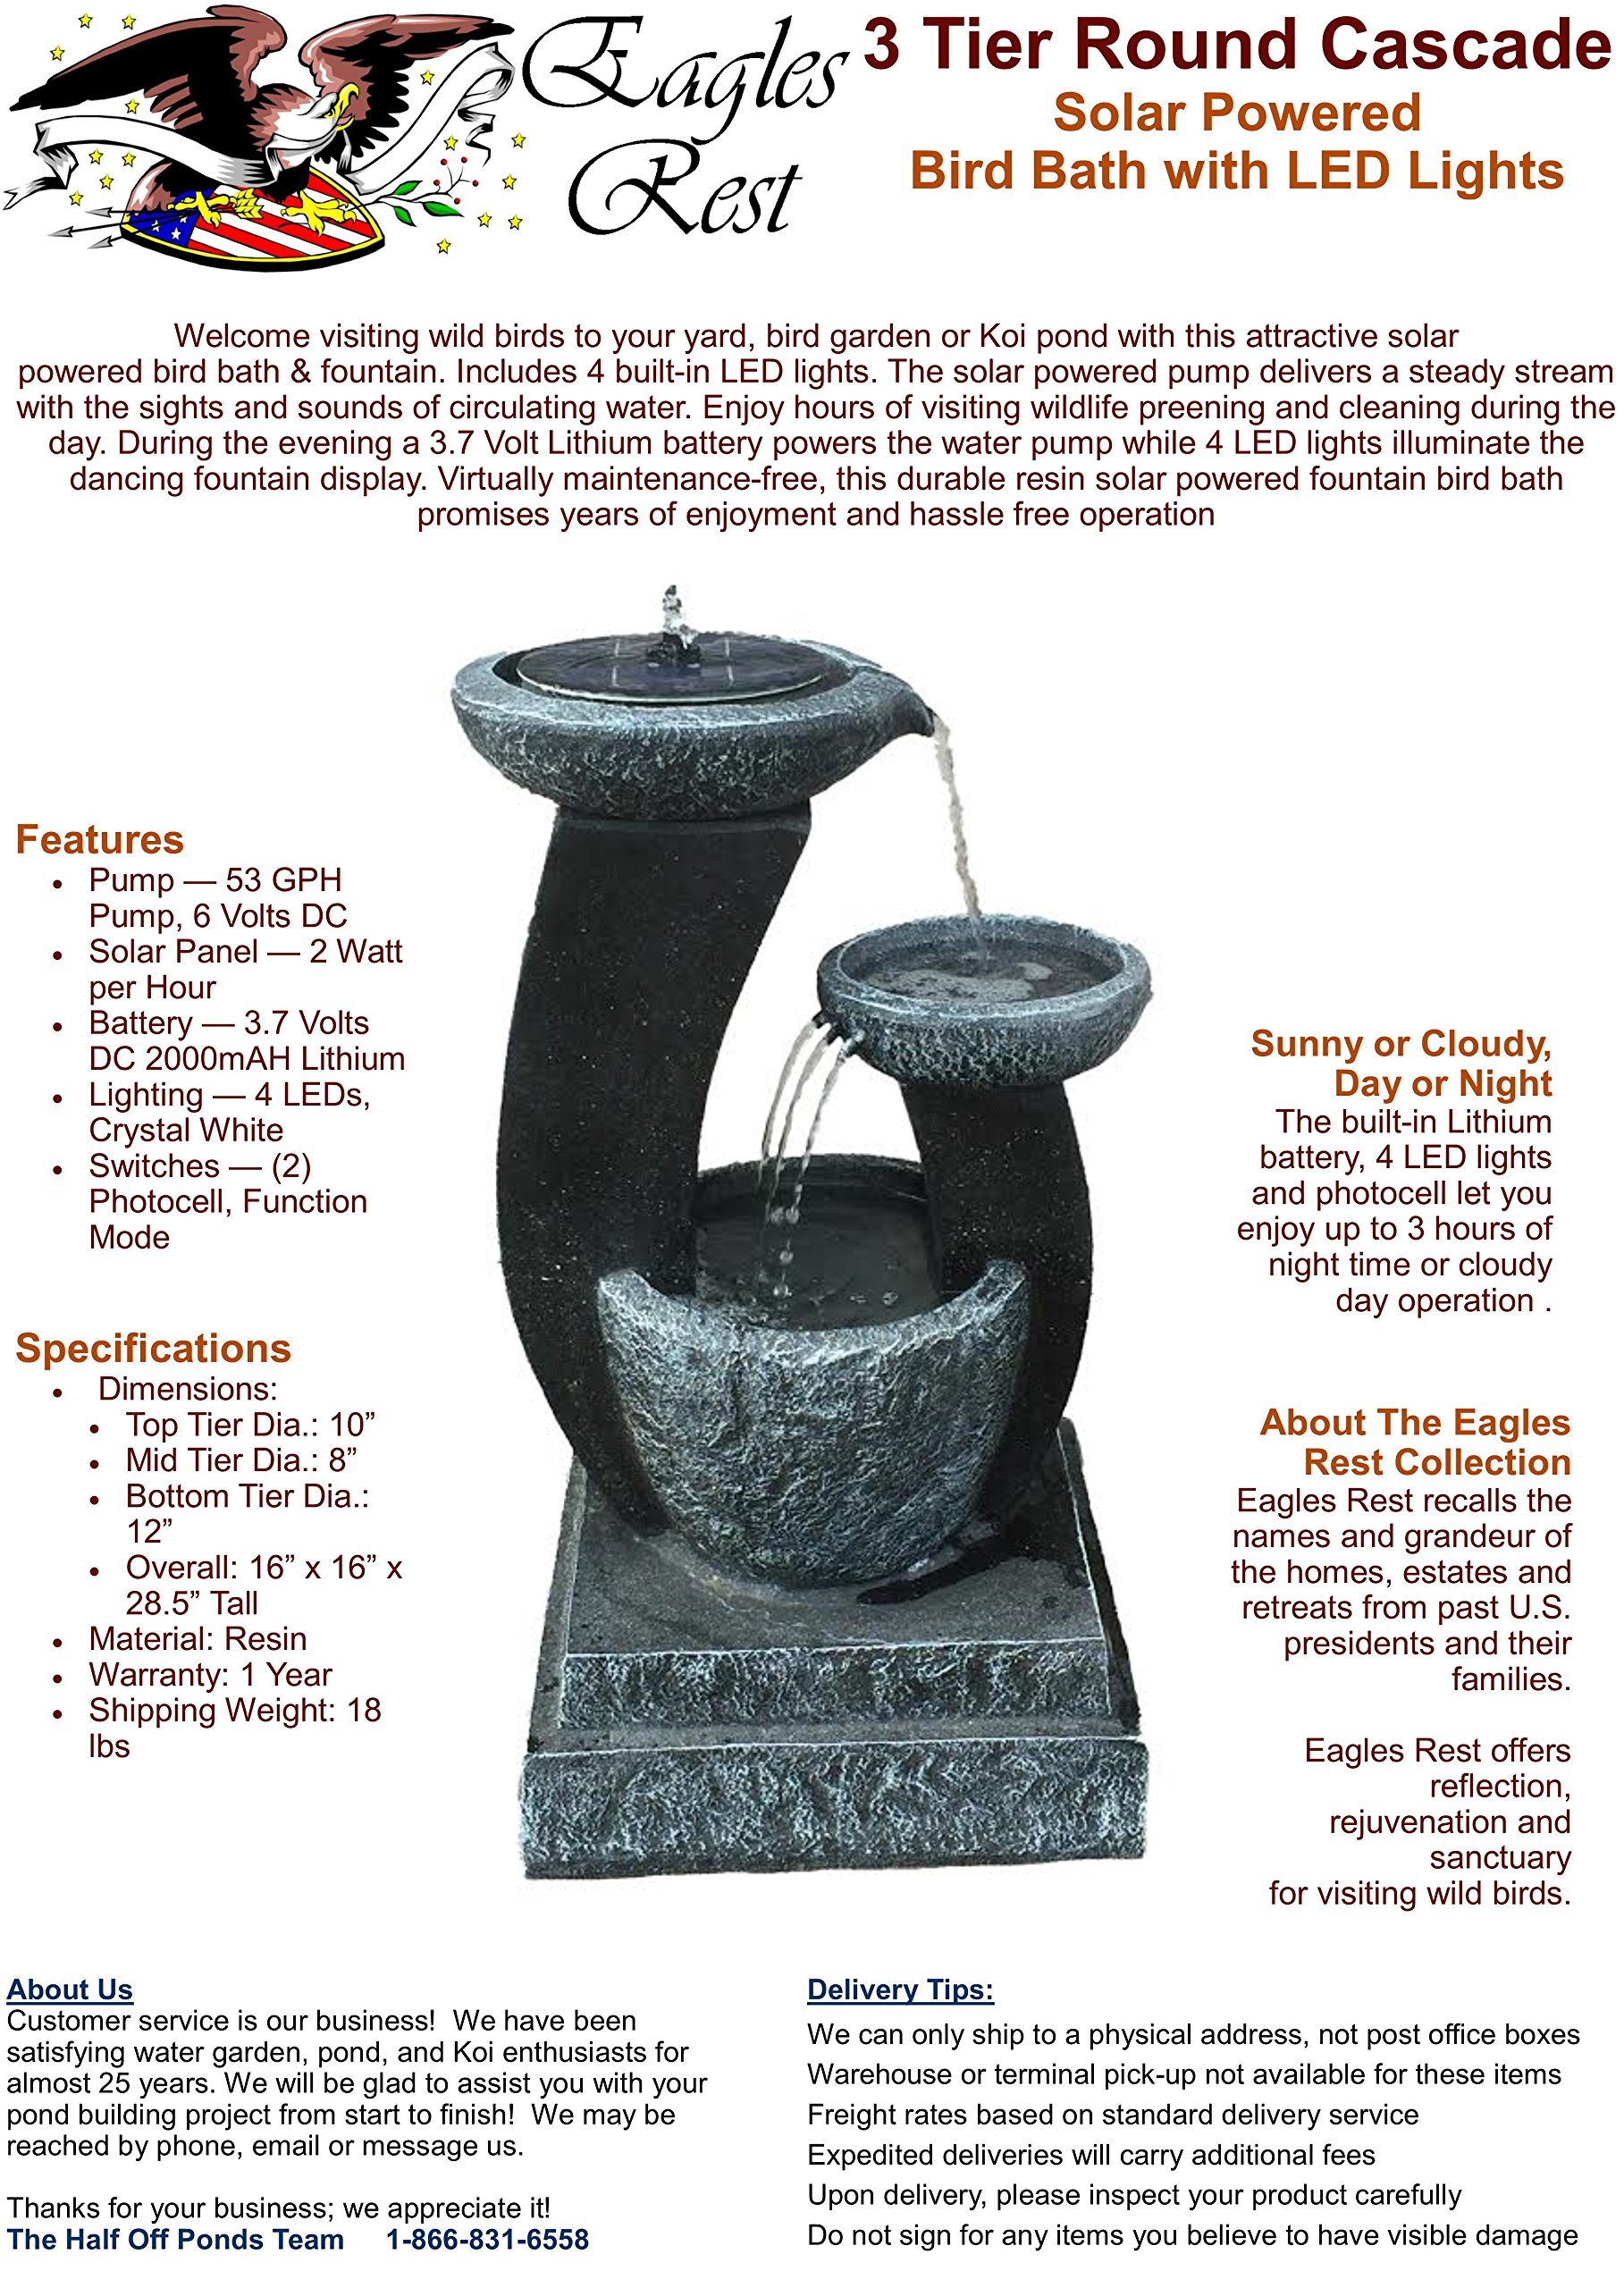 Patriot 3 Tier Cascading Pot Solar Fountain and Bird Bath with LED Lights